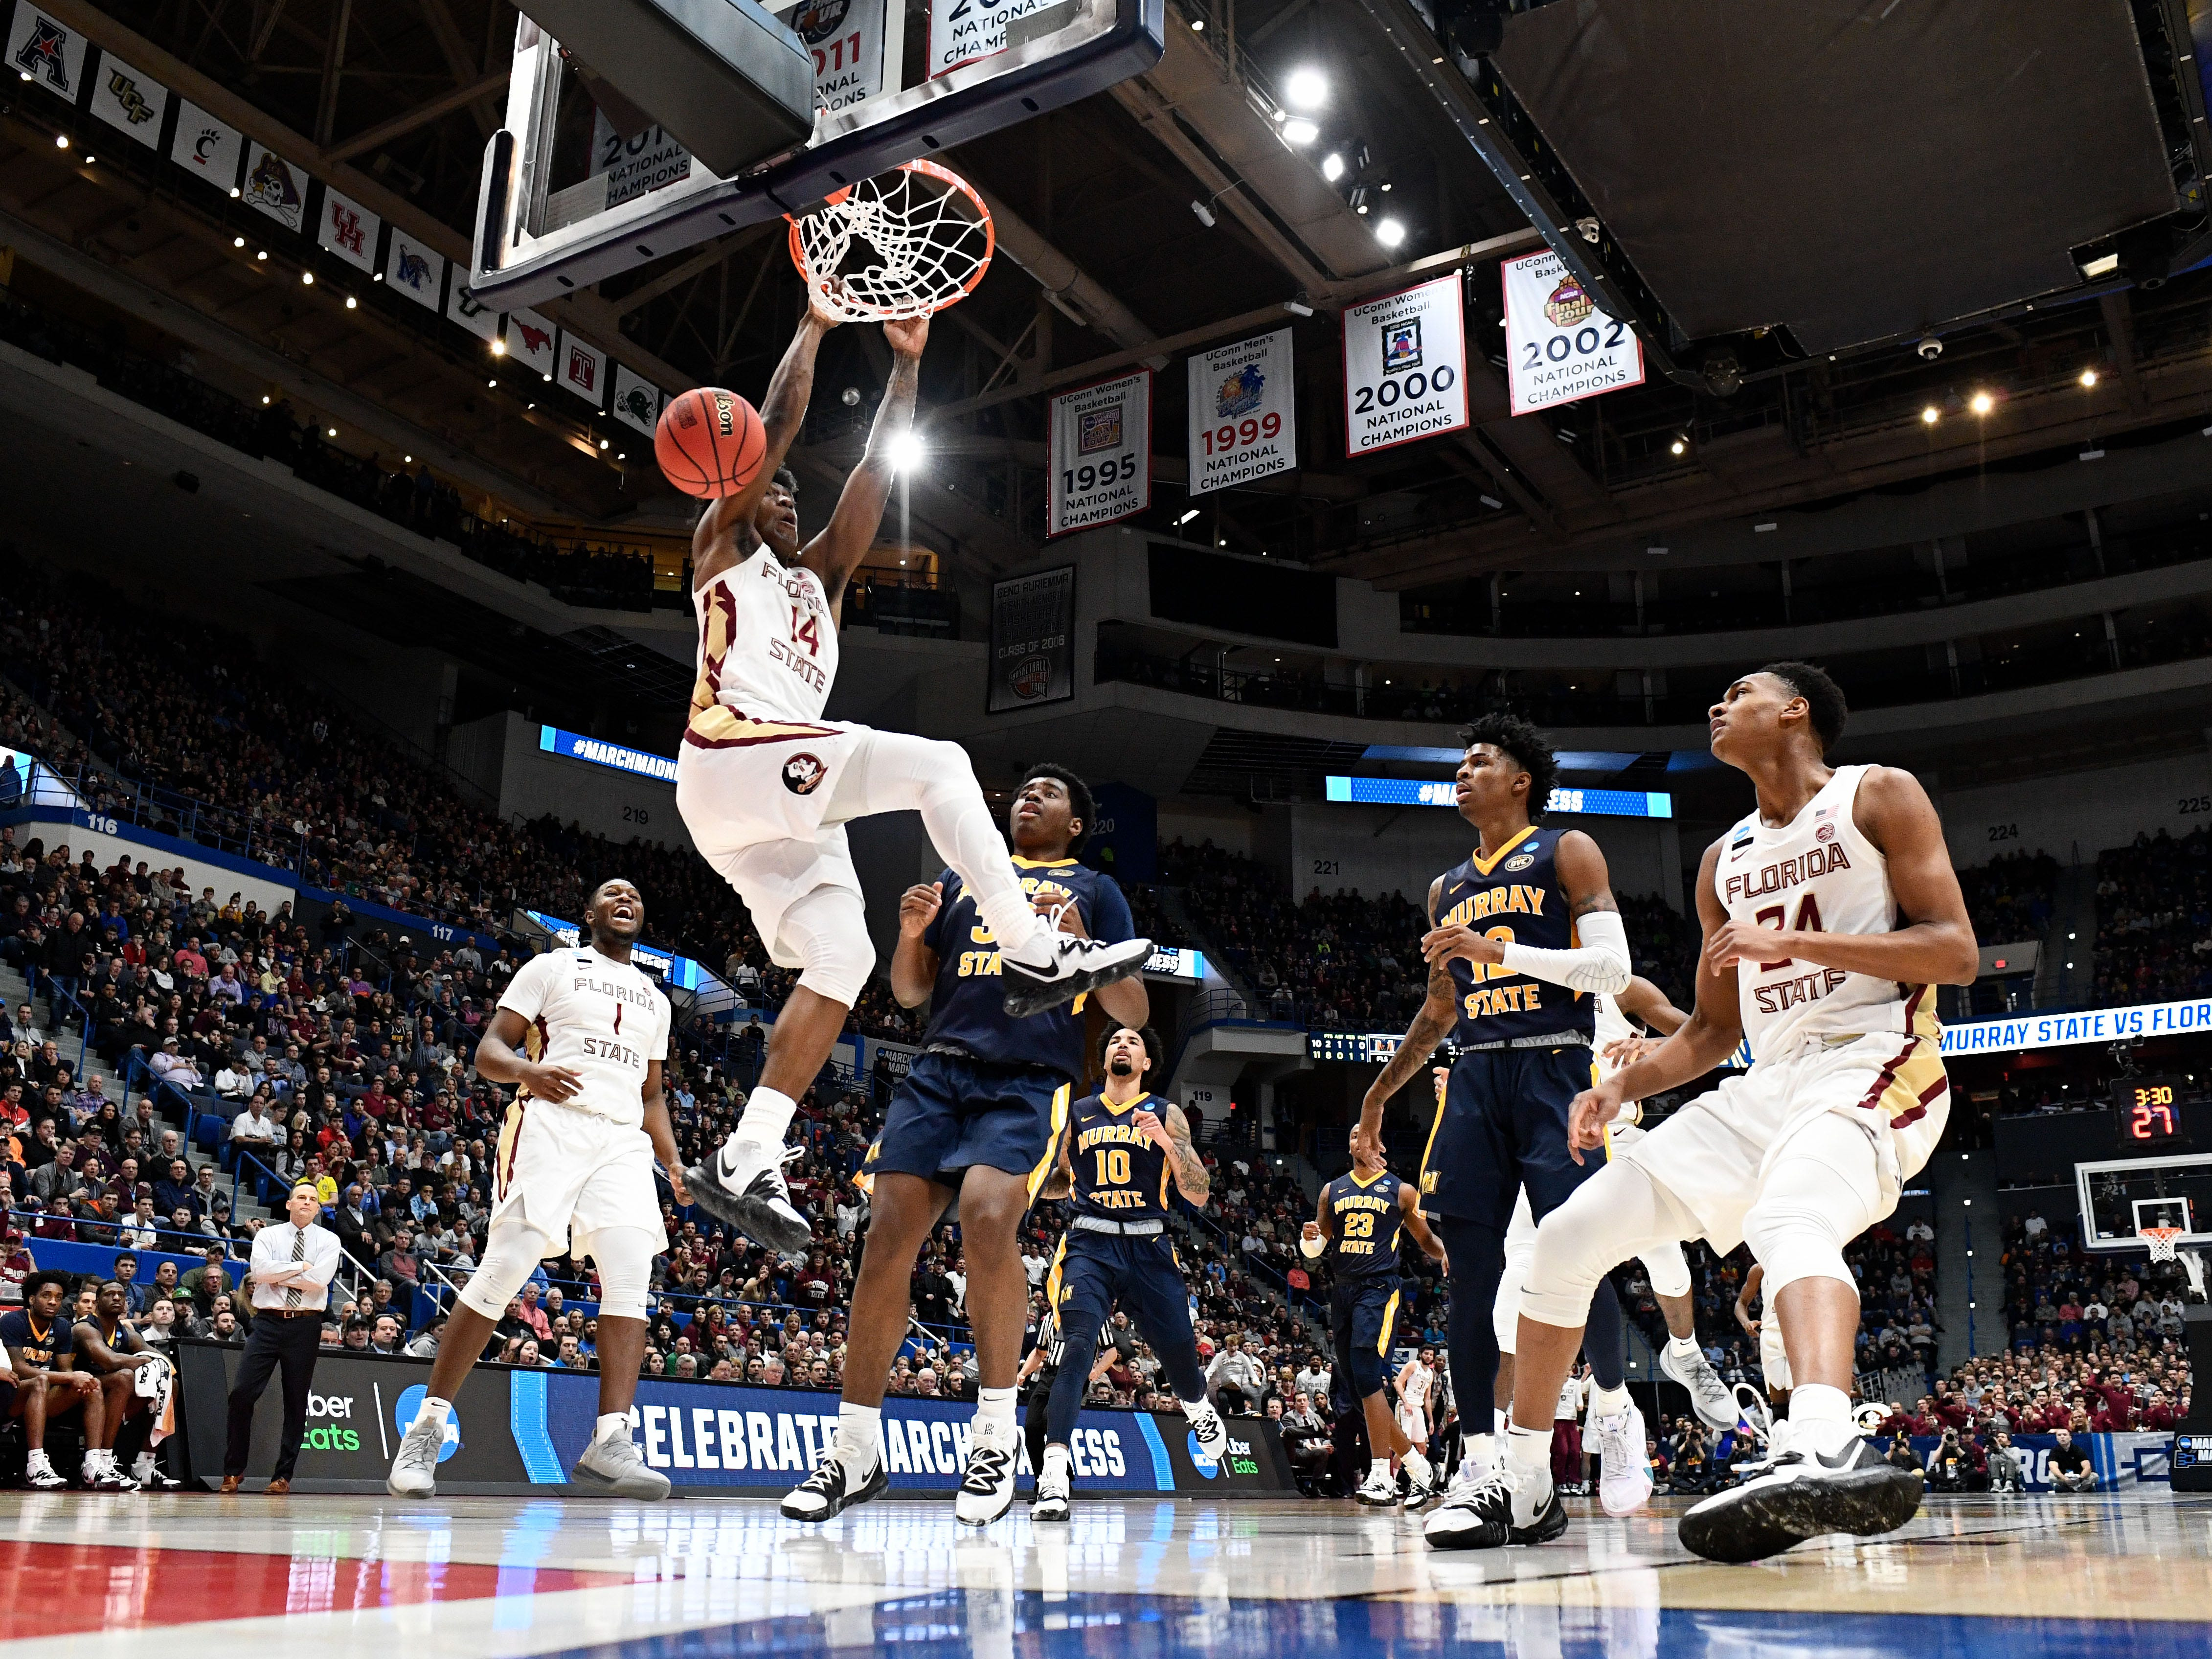 Mar 23, 2019; Hartford, CT, USA; Florida State Seminoles guard Terance Mann (14) dunks and scores against the Murray State Racers during the first half of a game in the second round of the 2019 NCAA Tournament at XL Center. Mandatory Credit: Robert Deutsch-USA TODAY Sports